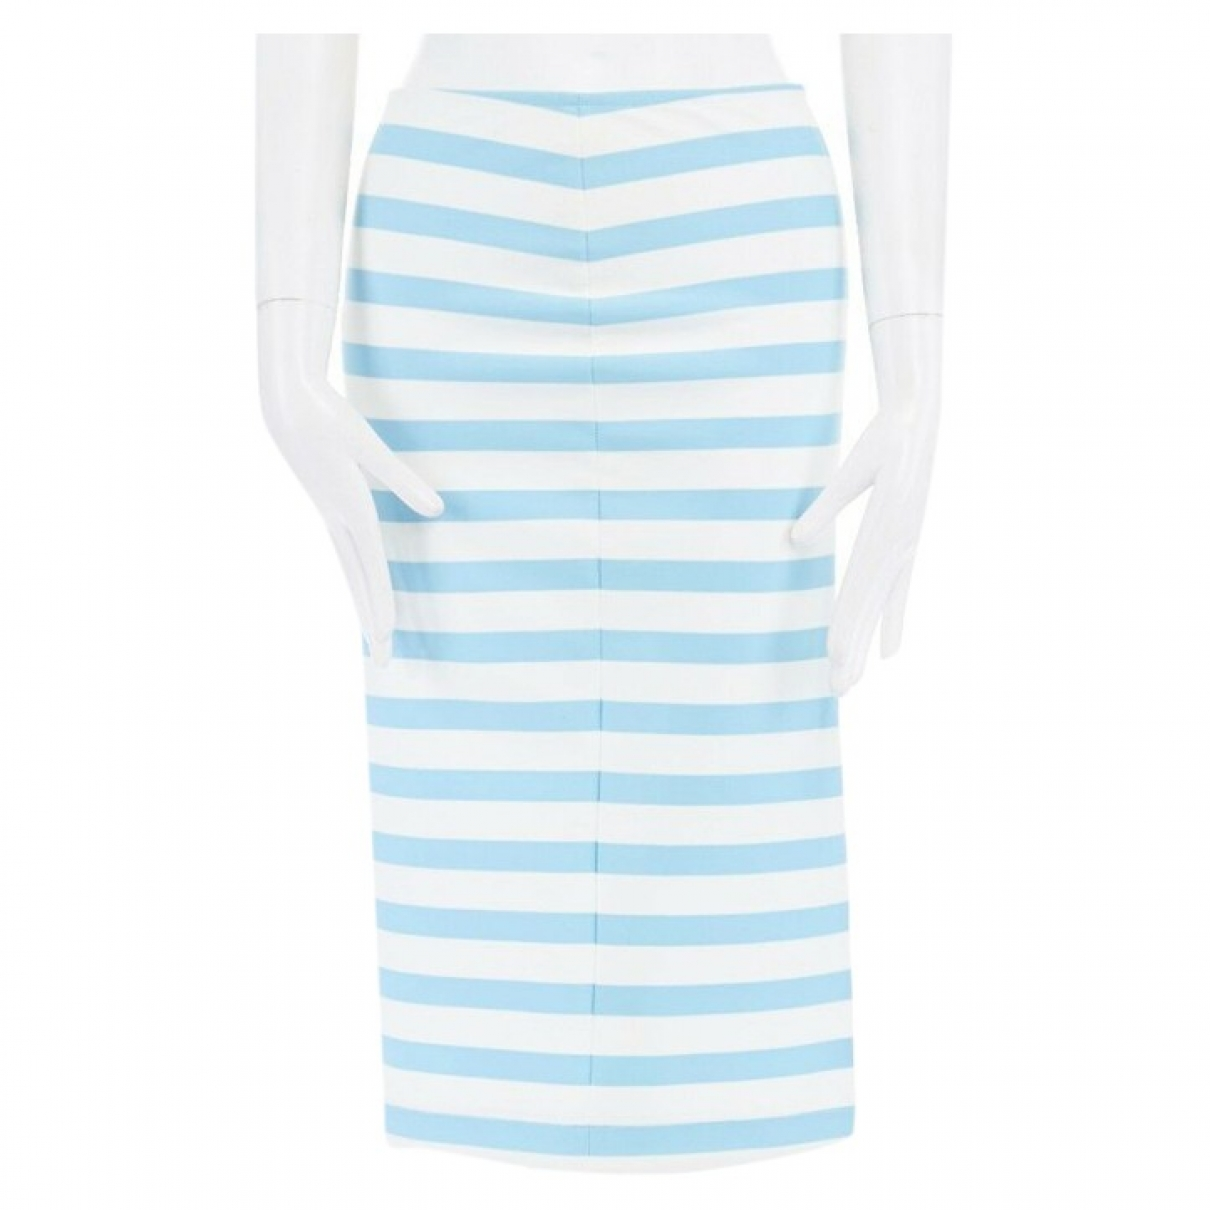 Tanya Taylor \N Blue Cotton skirt for Women 2 US